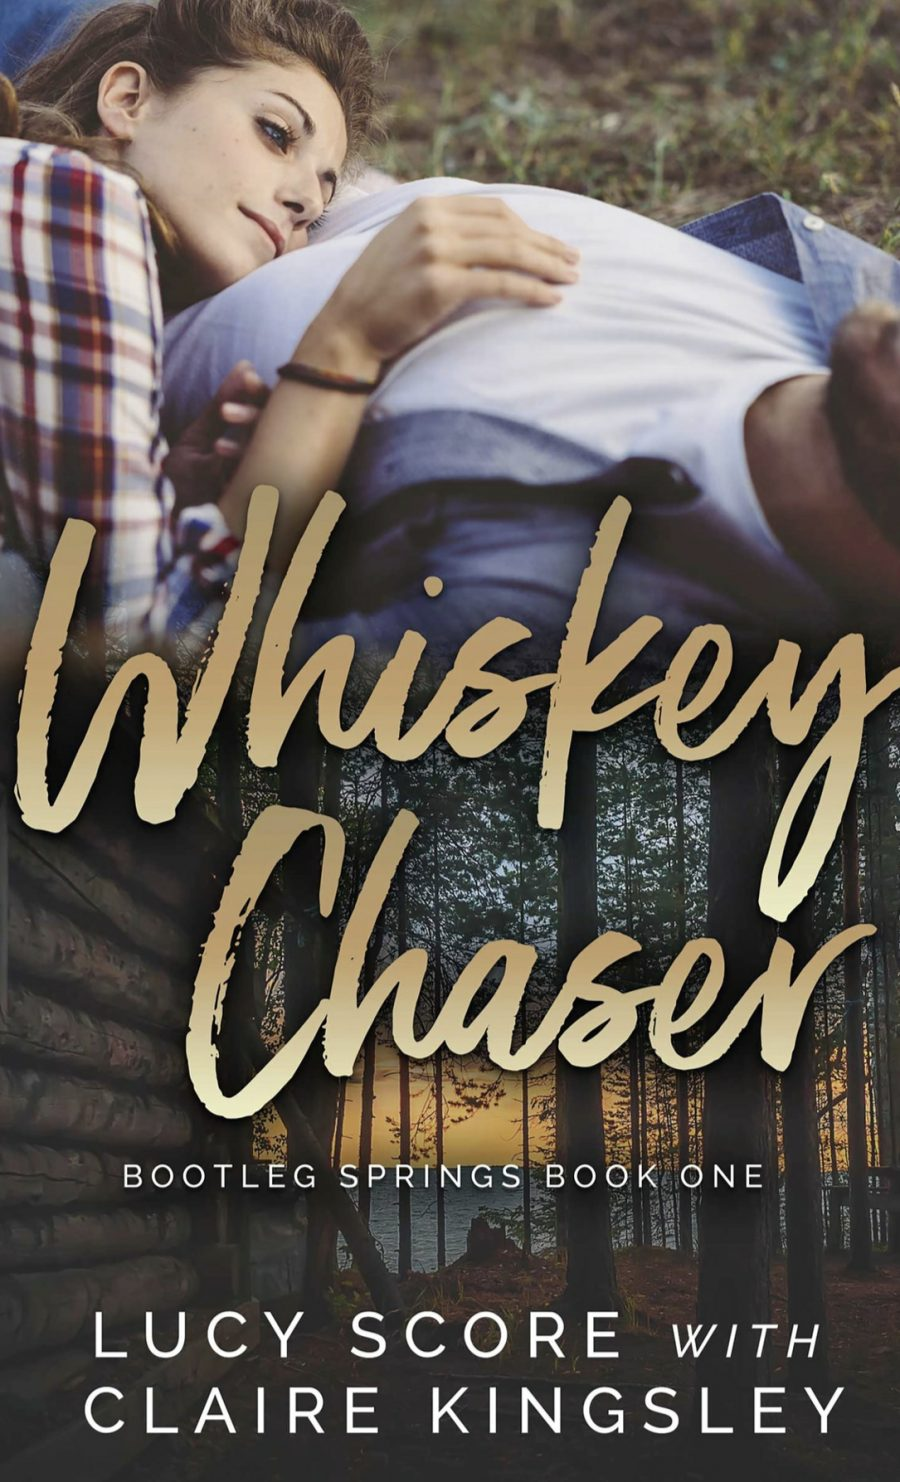 Whiskey Chaser by Lucy Score with Claire Kingsley - A Book Review #BookReview #Contemporary #ContemporaryRomance #HEA #KindleUnlimited #KU #Country #4Stars